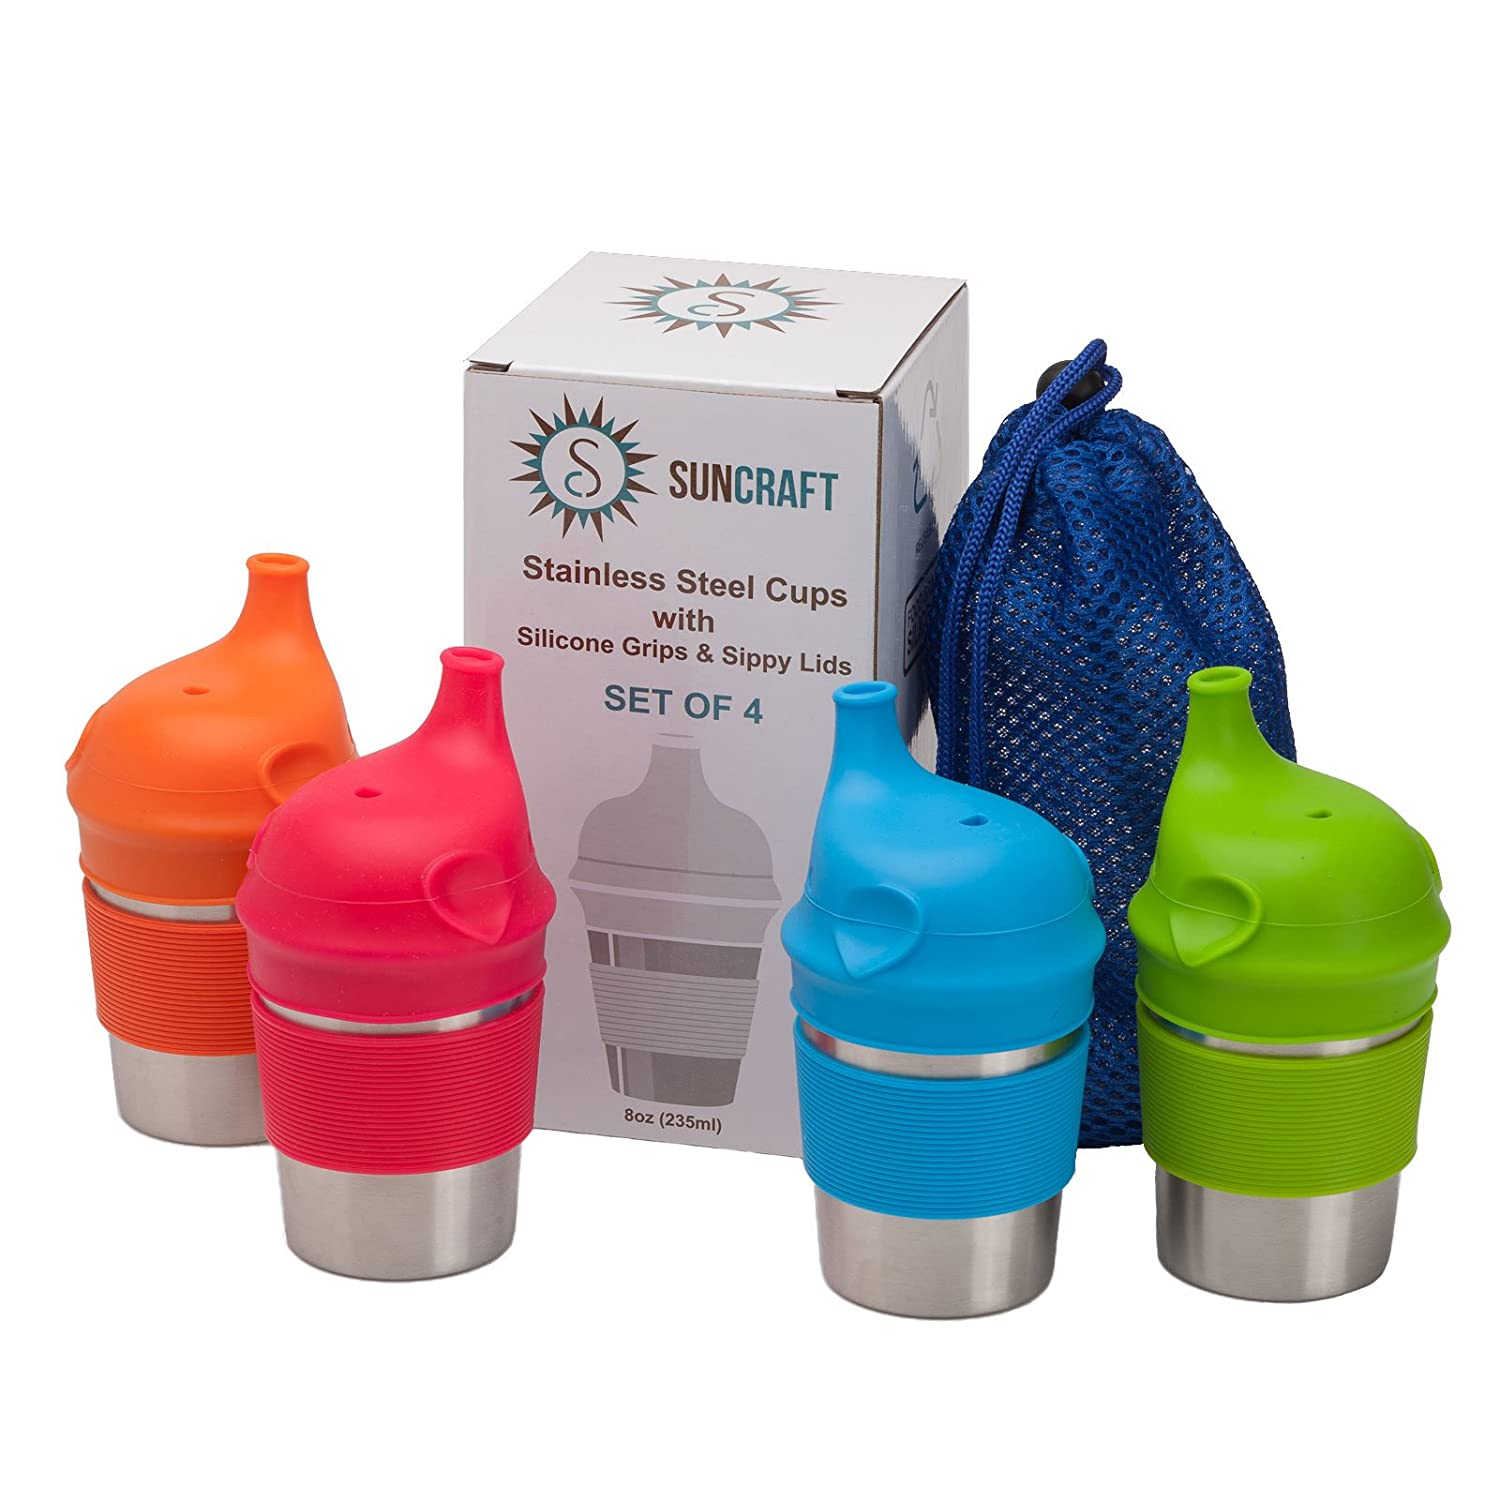 SunCraft Stainless Steel Cups with Silicone Sippy Lids & Grips for Kids Toddlers Babies (8oz, 4-Pack) BPA Free & Lab-Tested – Portable Carrying Pouch Included